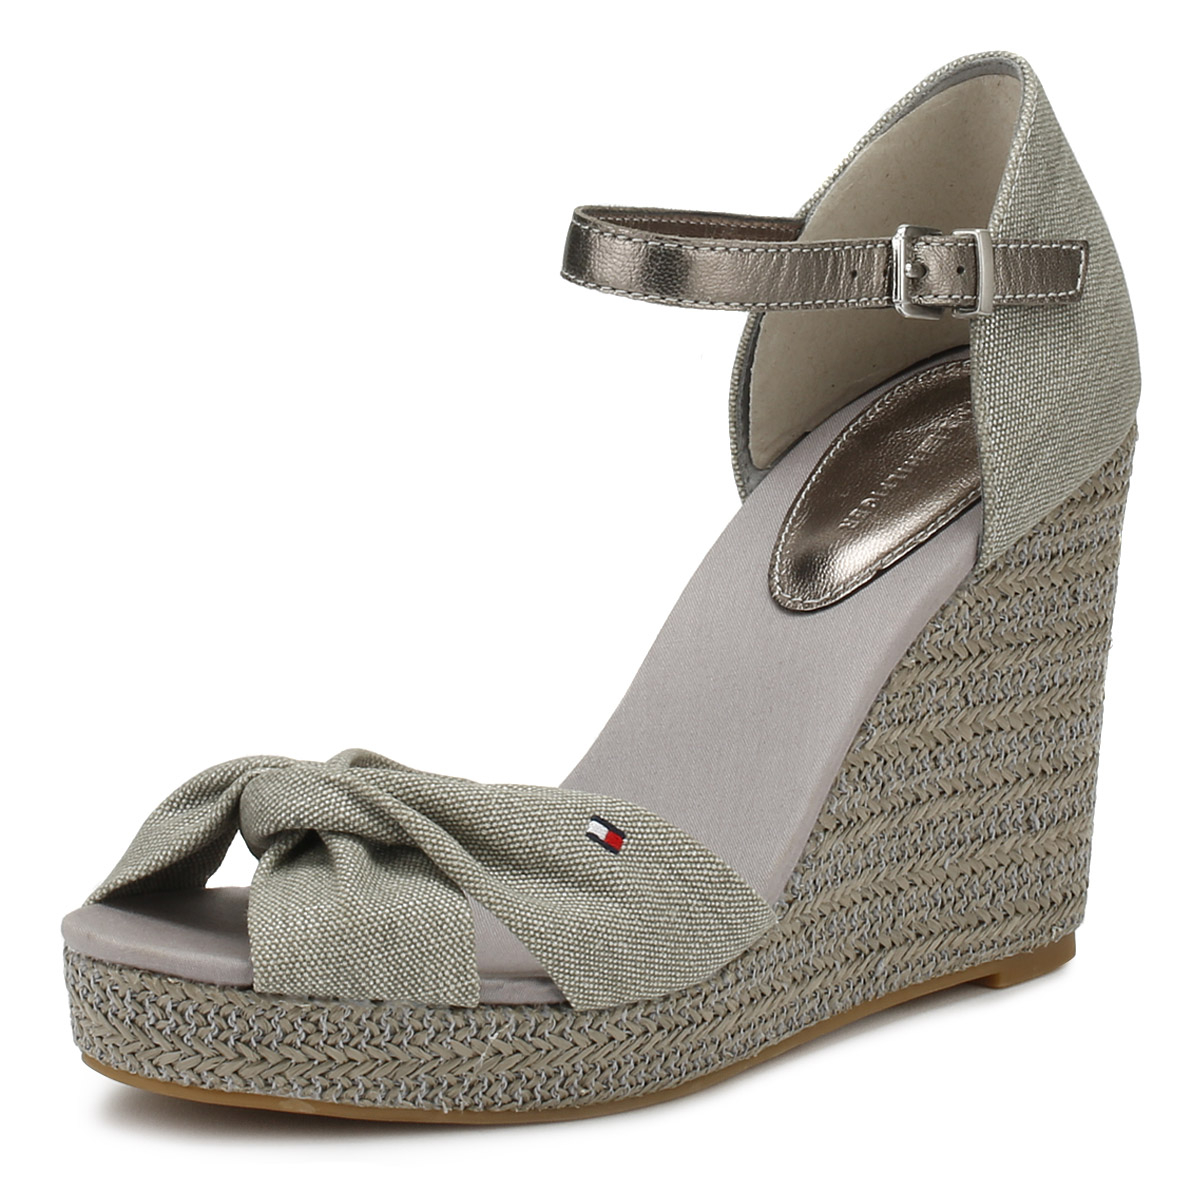 4915fb59d Details about Tommy Hilfiger Womens Sandals Light Grey Metallic Elena  Summer Wedge Shoes